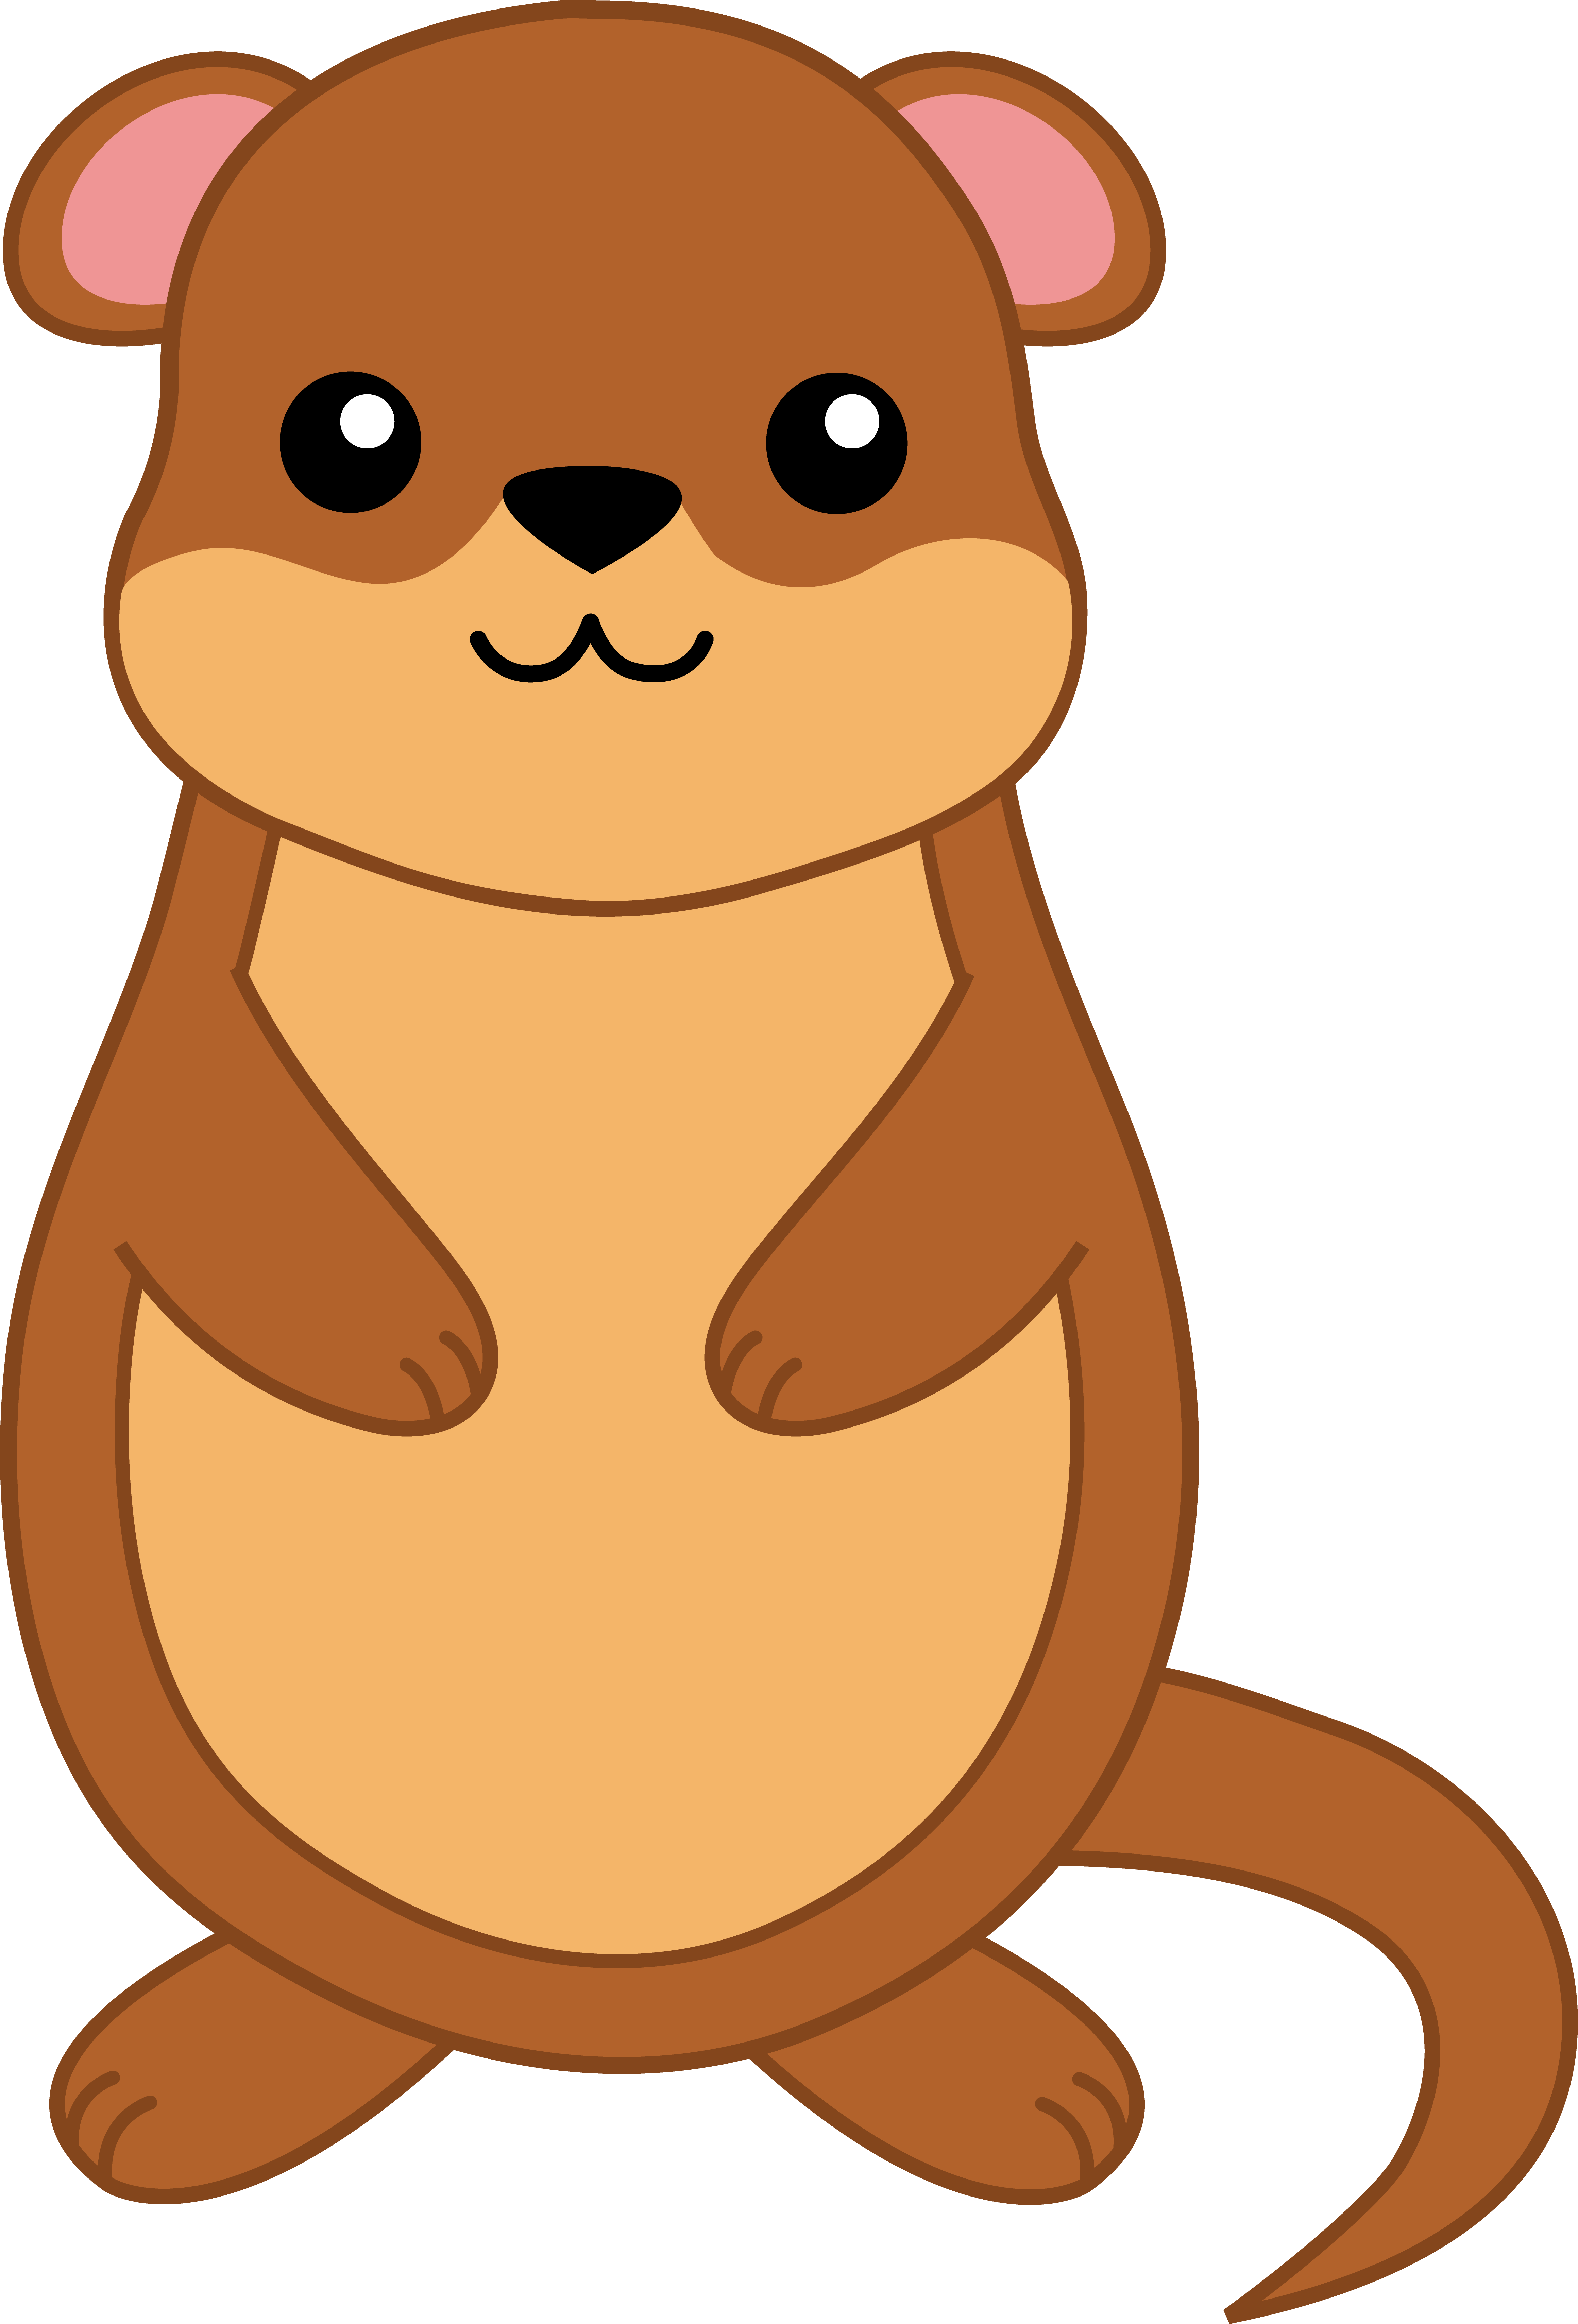 clip transparent library Treemap groundhog . Chipmunk clipart cute drawing